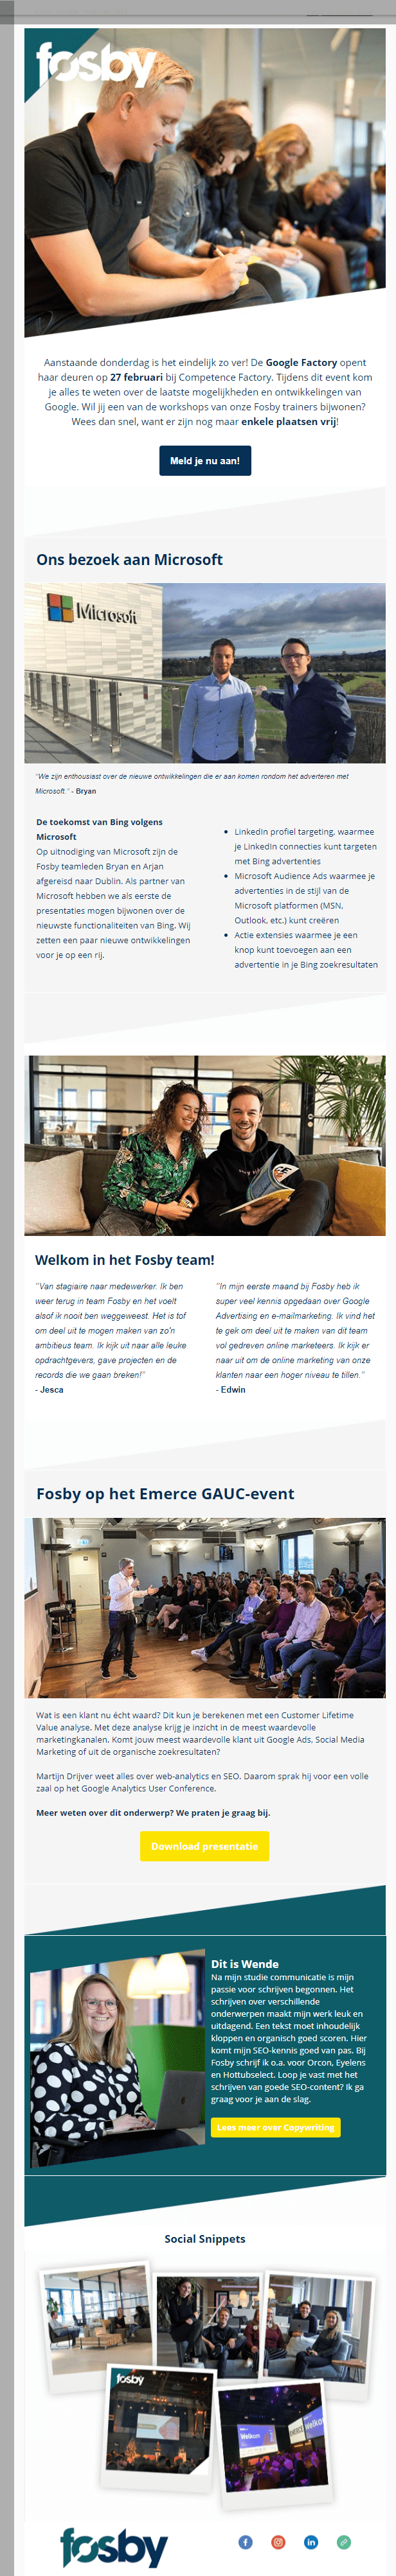 Image of a Fosby newsletter with highlights of the Fosby team in front of Microsoft, Google Factory, and an Emerce GAUC event.